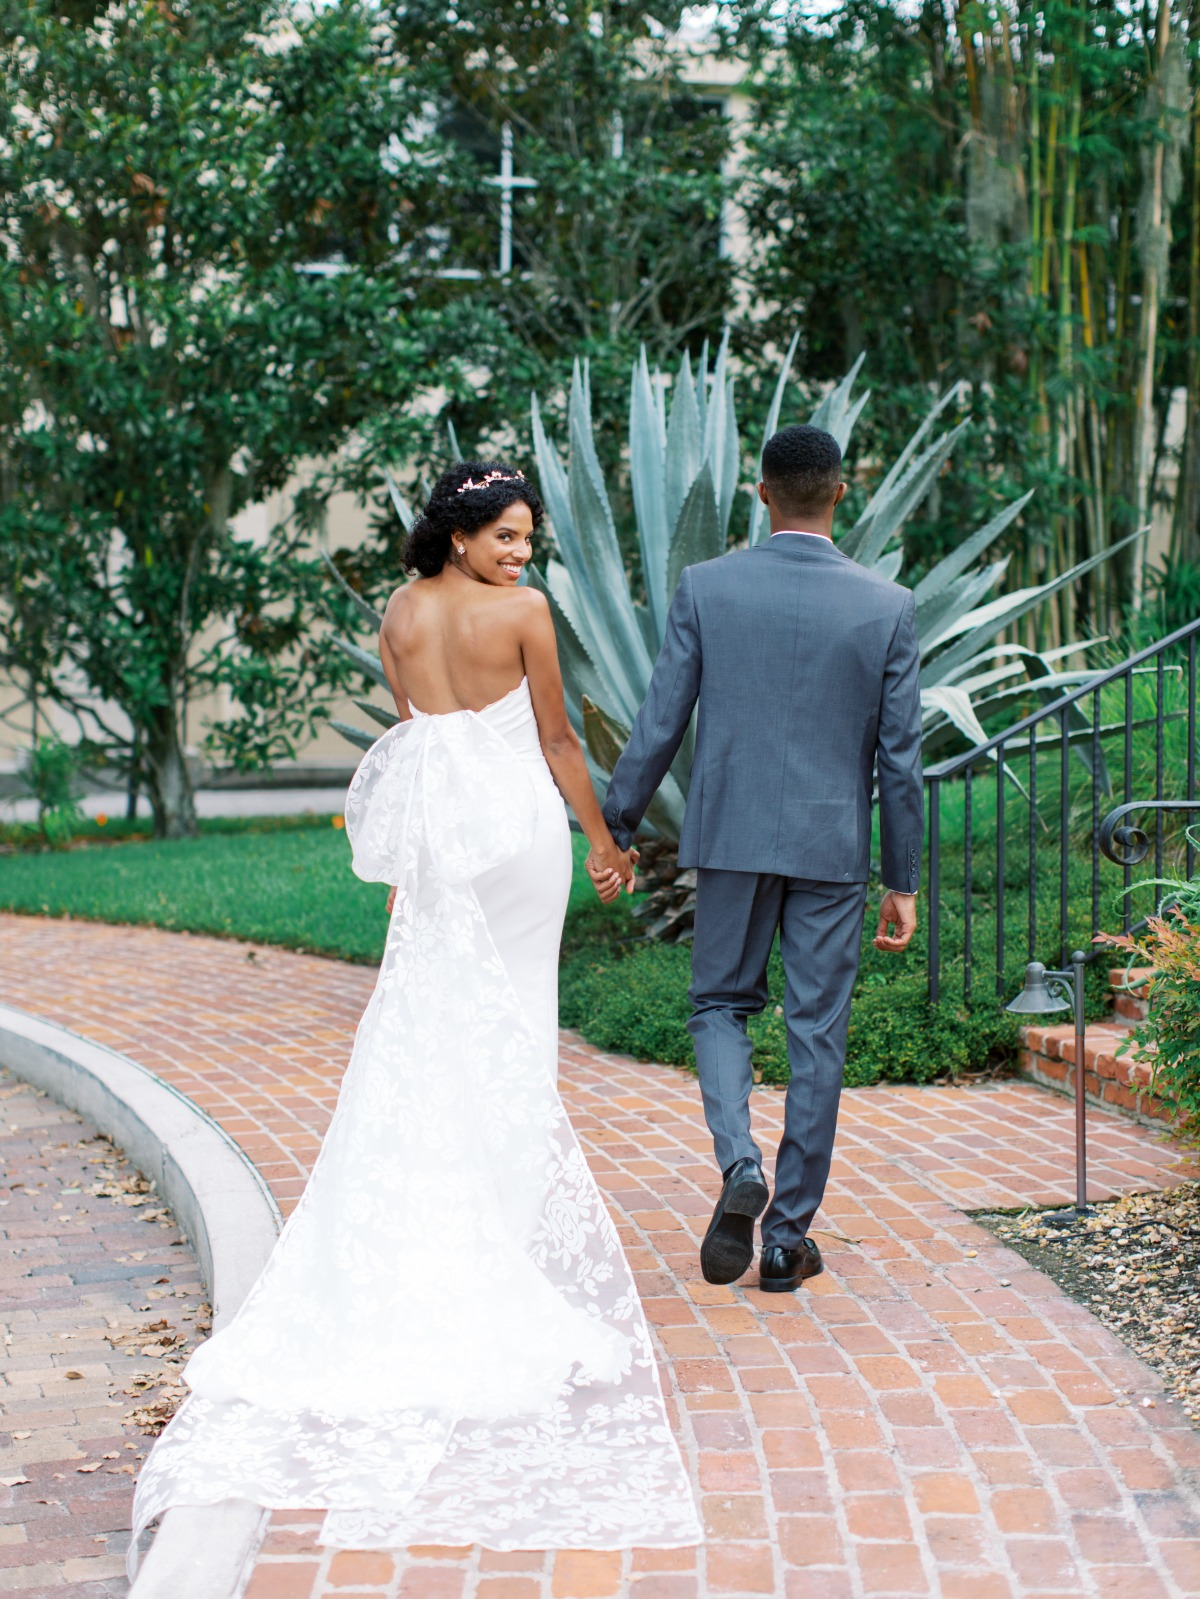 wedding dress with large bow in back